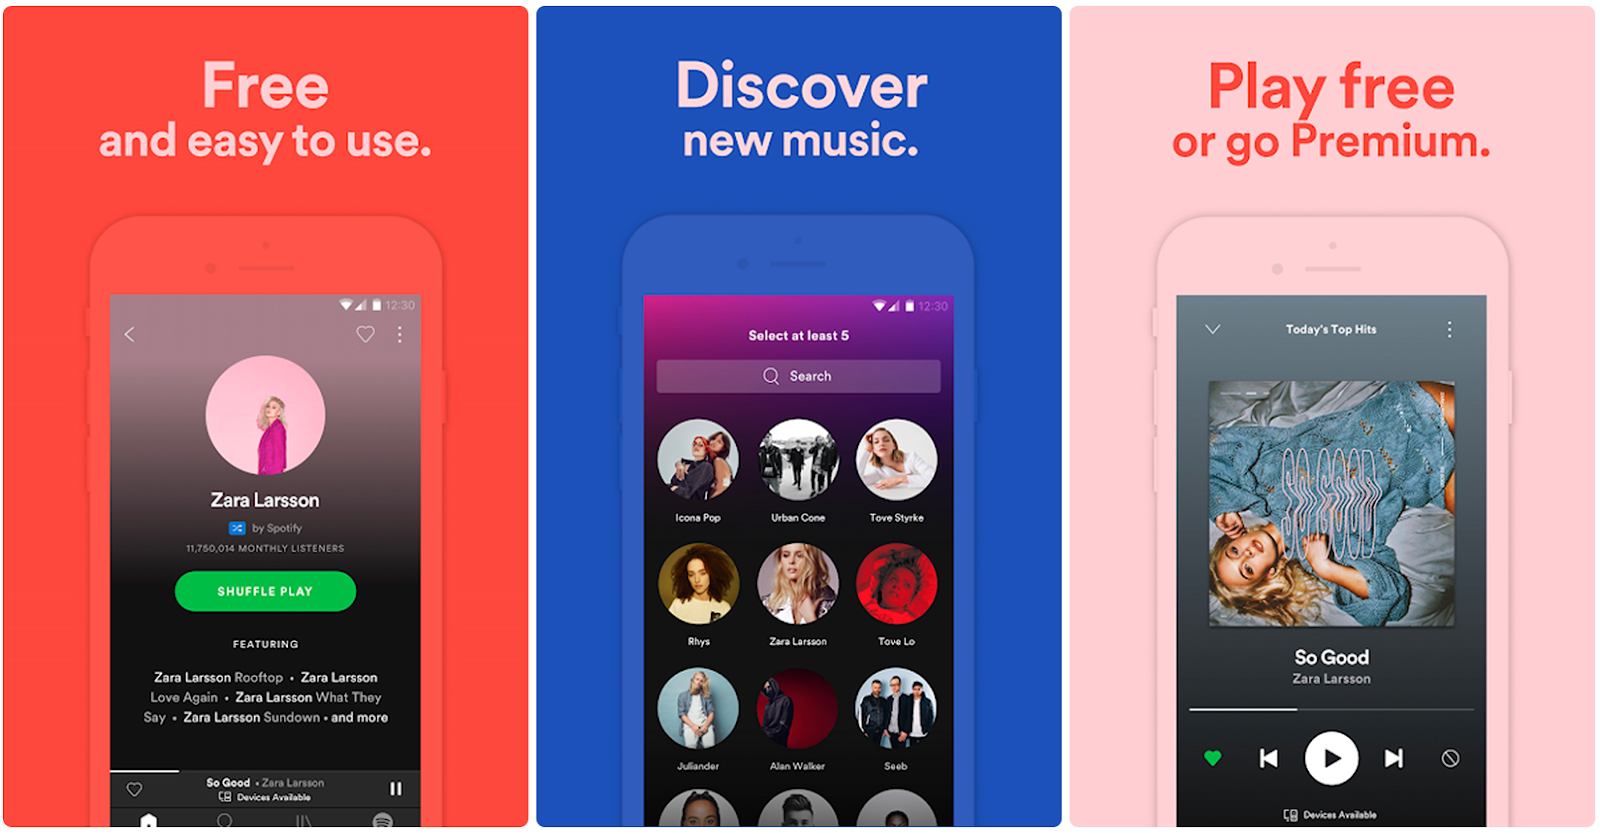 What's the technology behind a music streaming app like